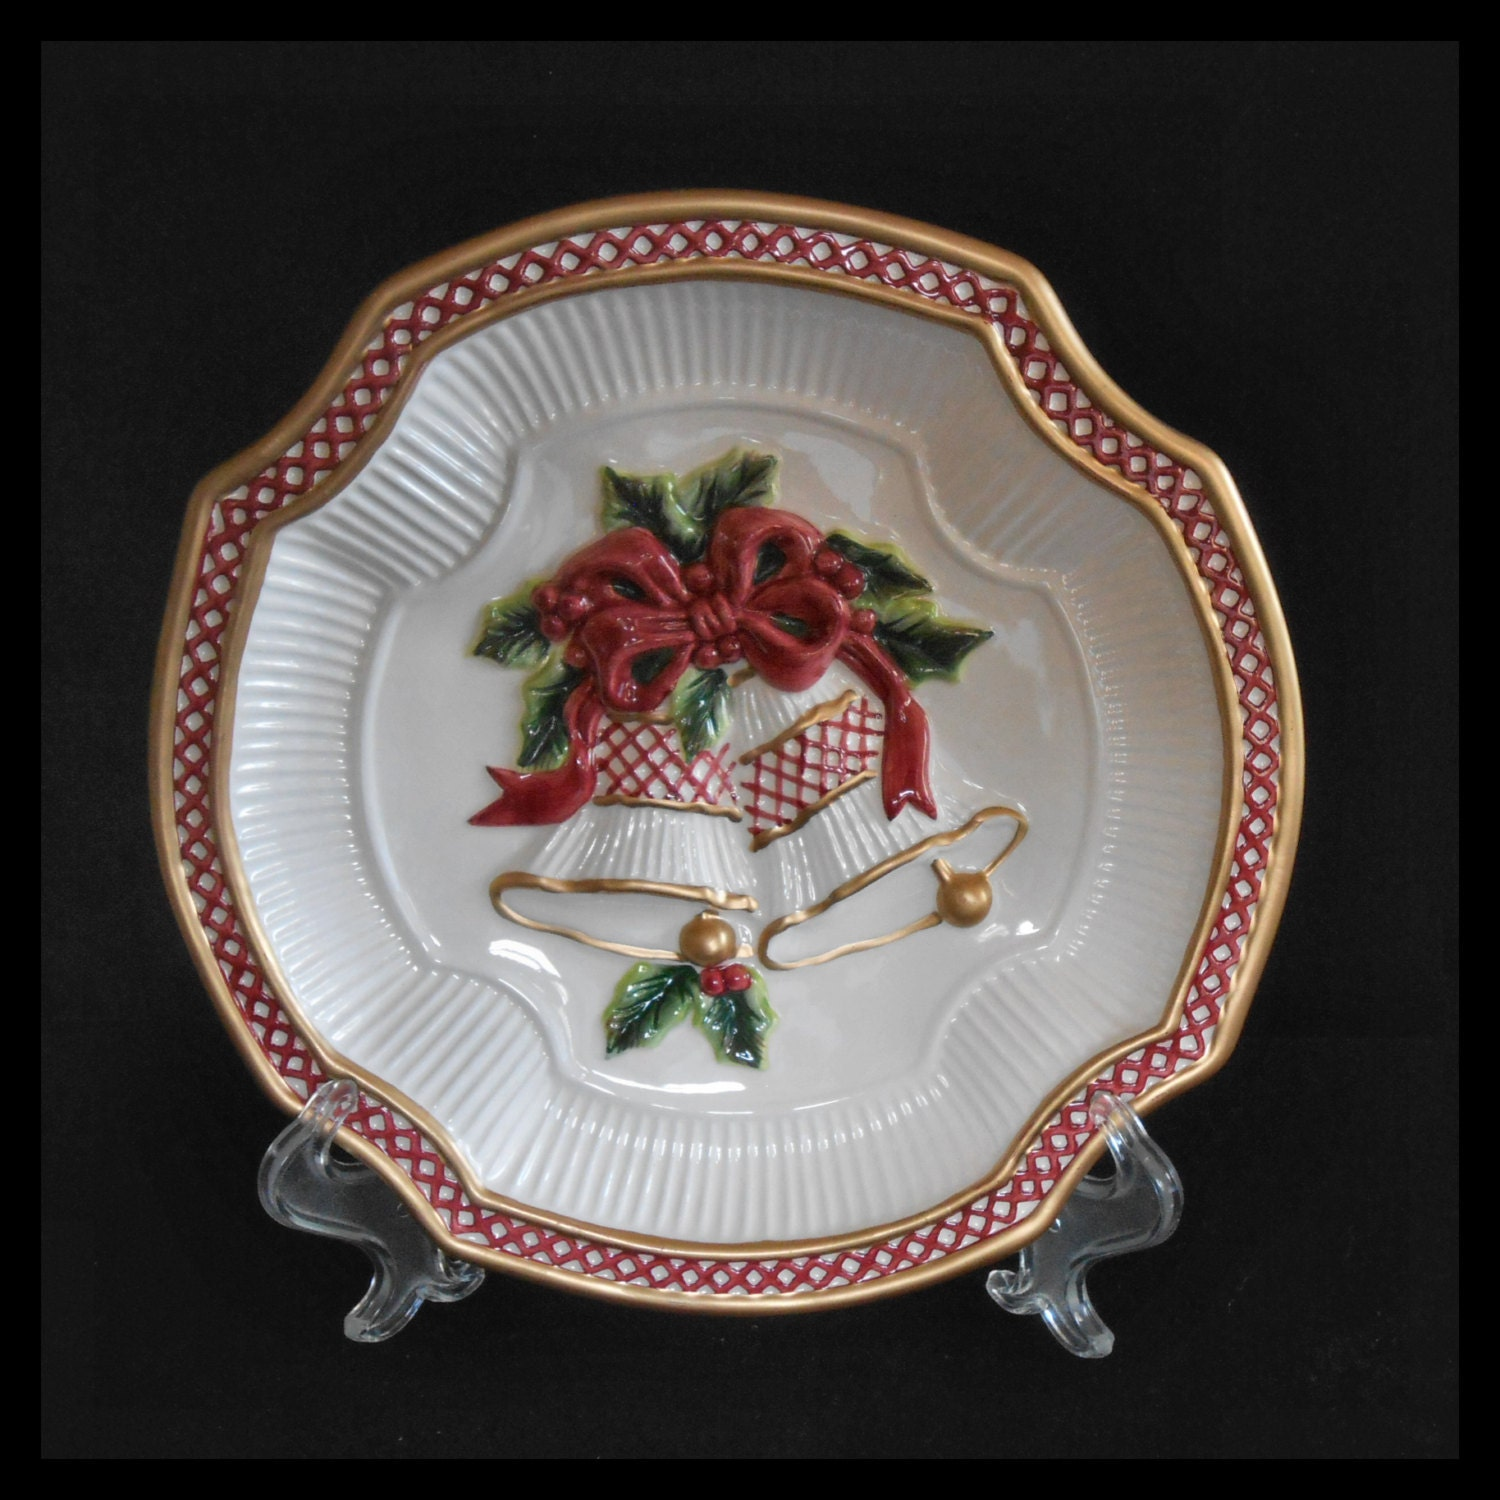 Hand Painted Porcelain Plate Ceramic Plate Christmas Plate Holiday Decor